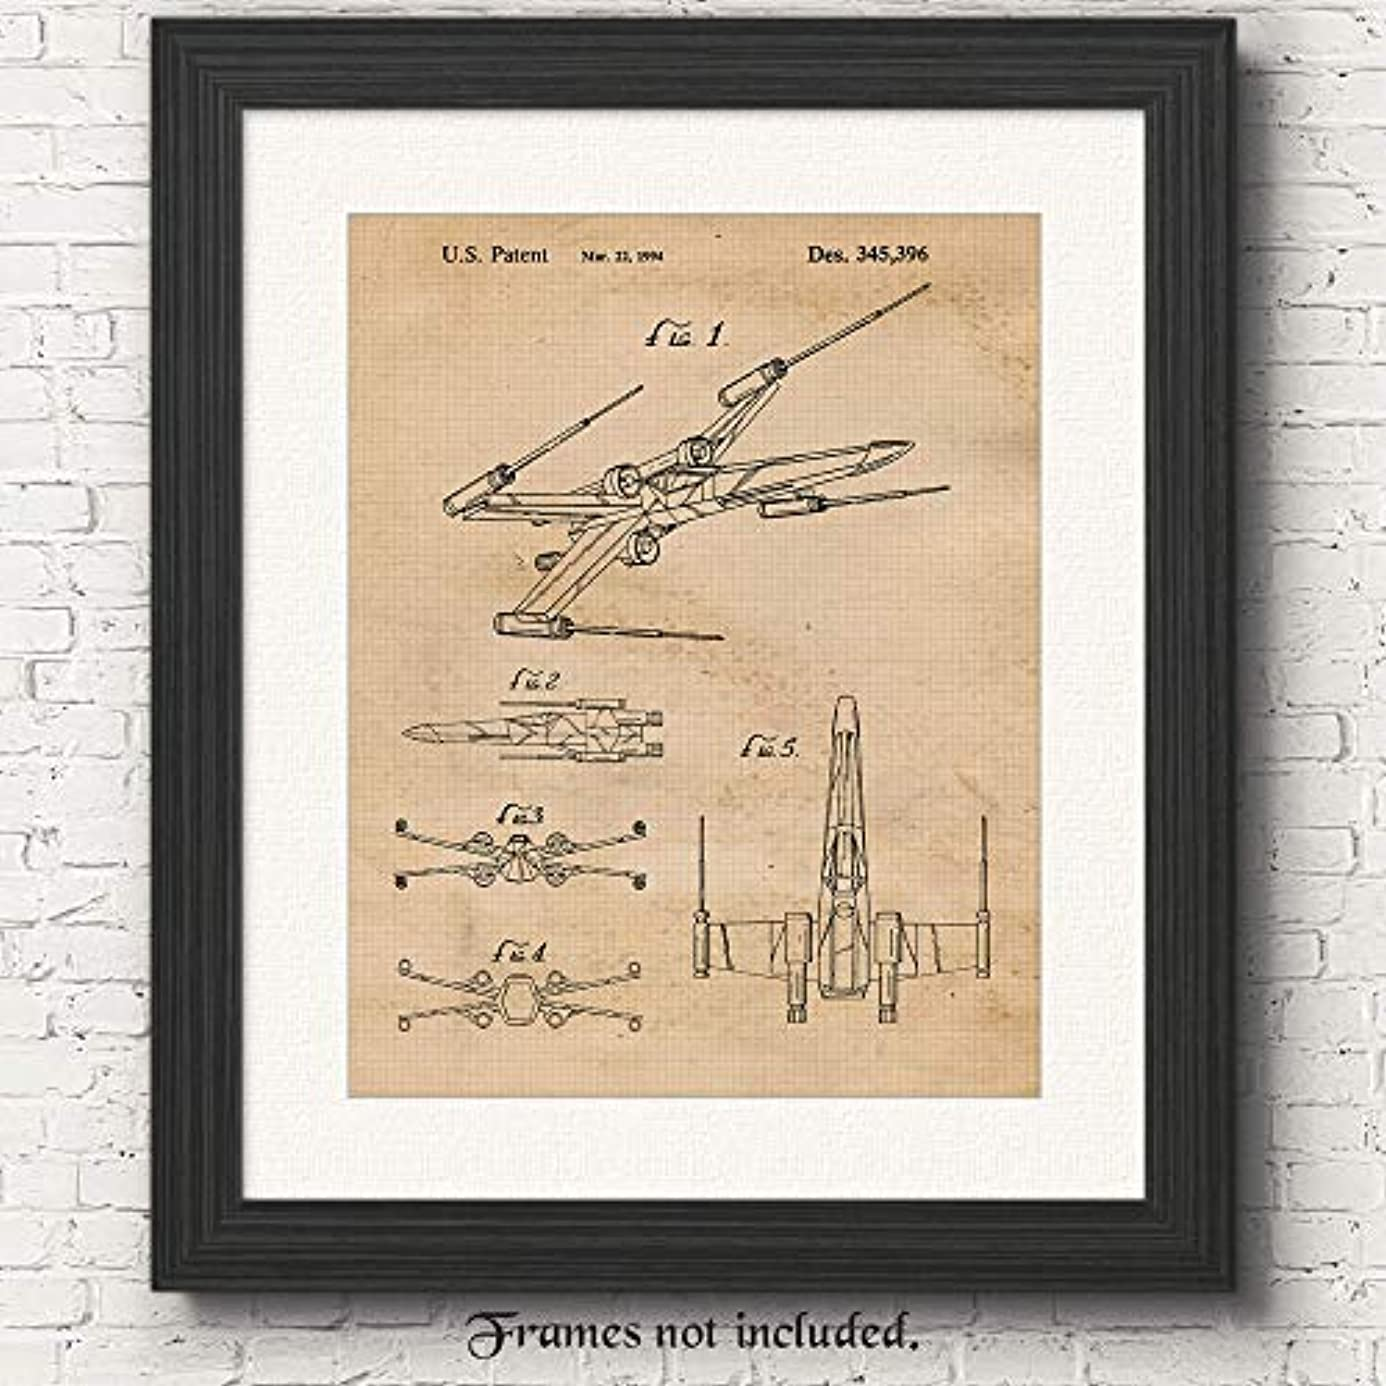 Original Star Wars X-Wing Starfighter Patent Art Poster Print - Set of 1 (One 11x14) Unframed - Great Wall Art Decor Gifts Under $15 for Home, Office, Garage, Man Cave, Student, Teacher, Movies Fan icz9582695